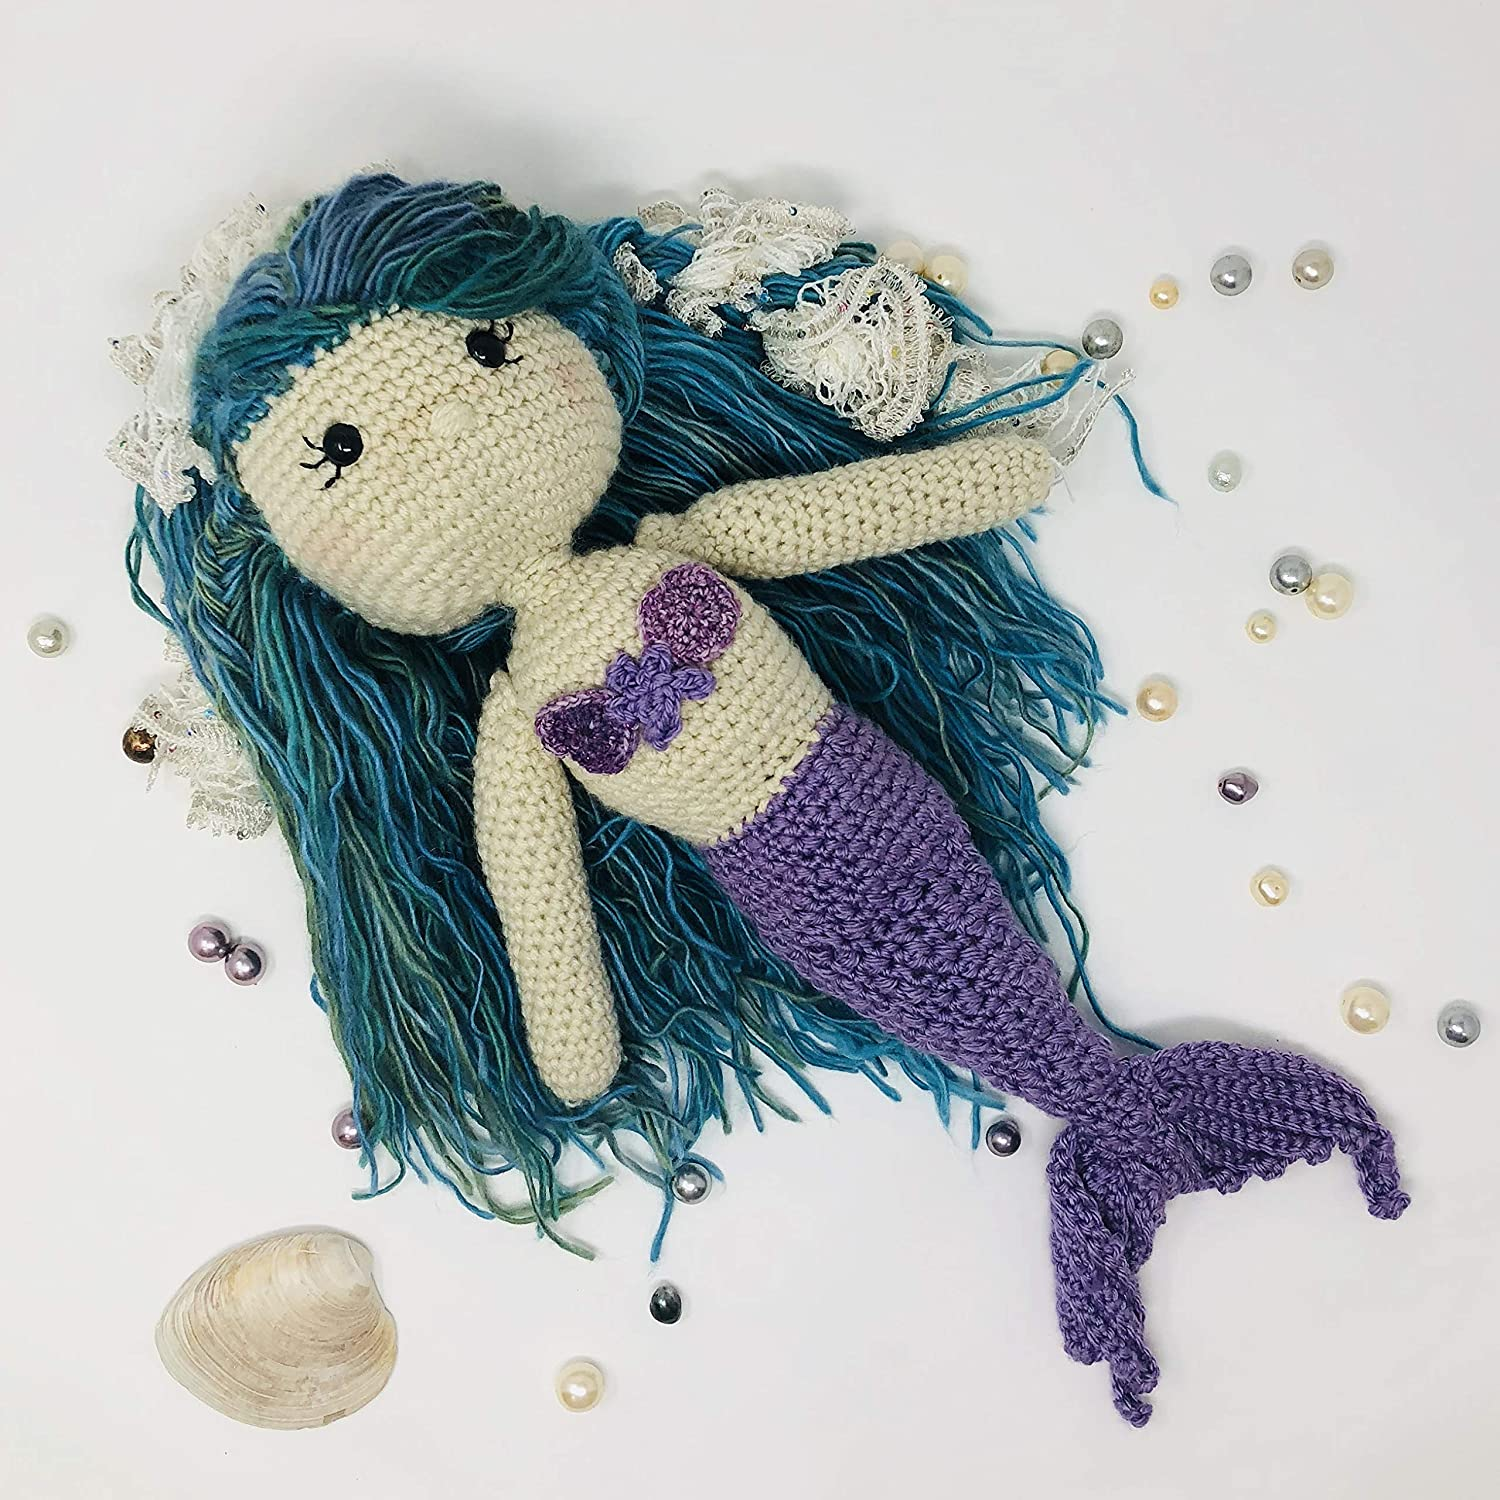 Amazon com: Willow the Mermaid - Large Crocheted Doll, Soft